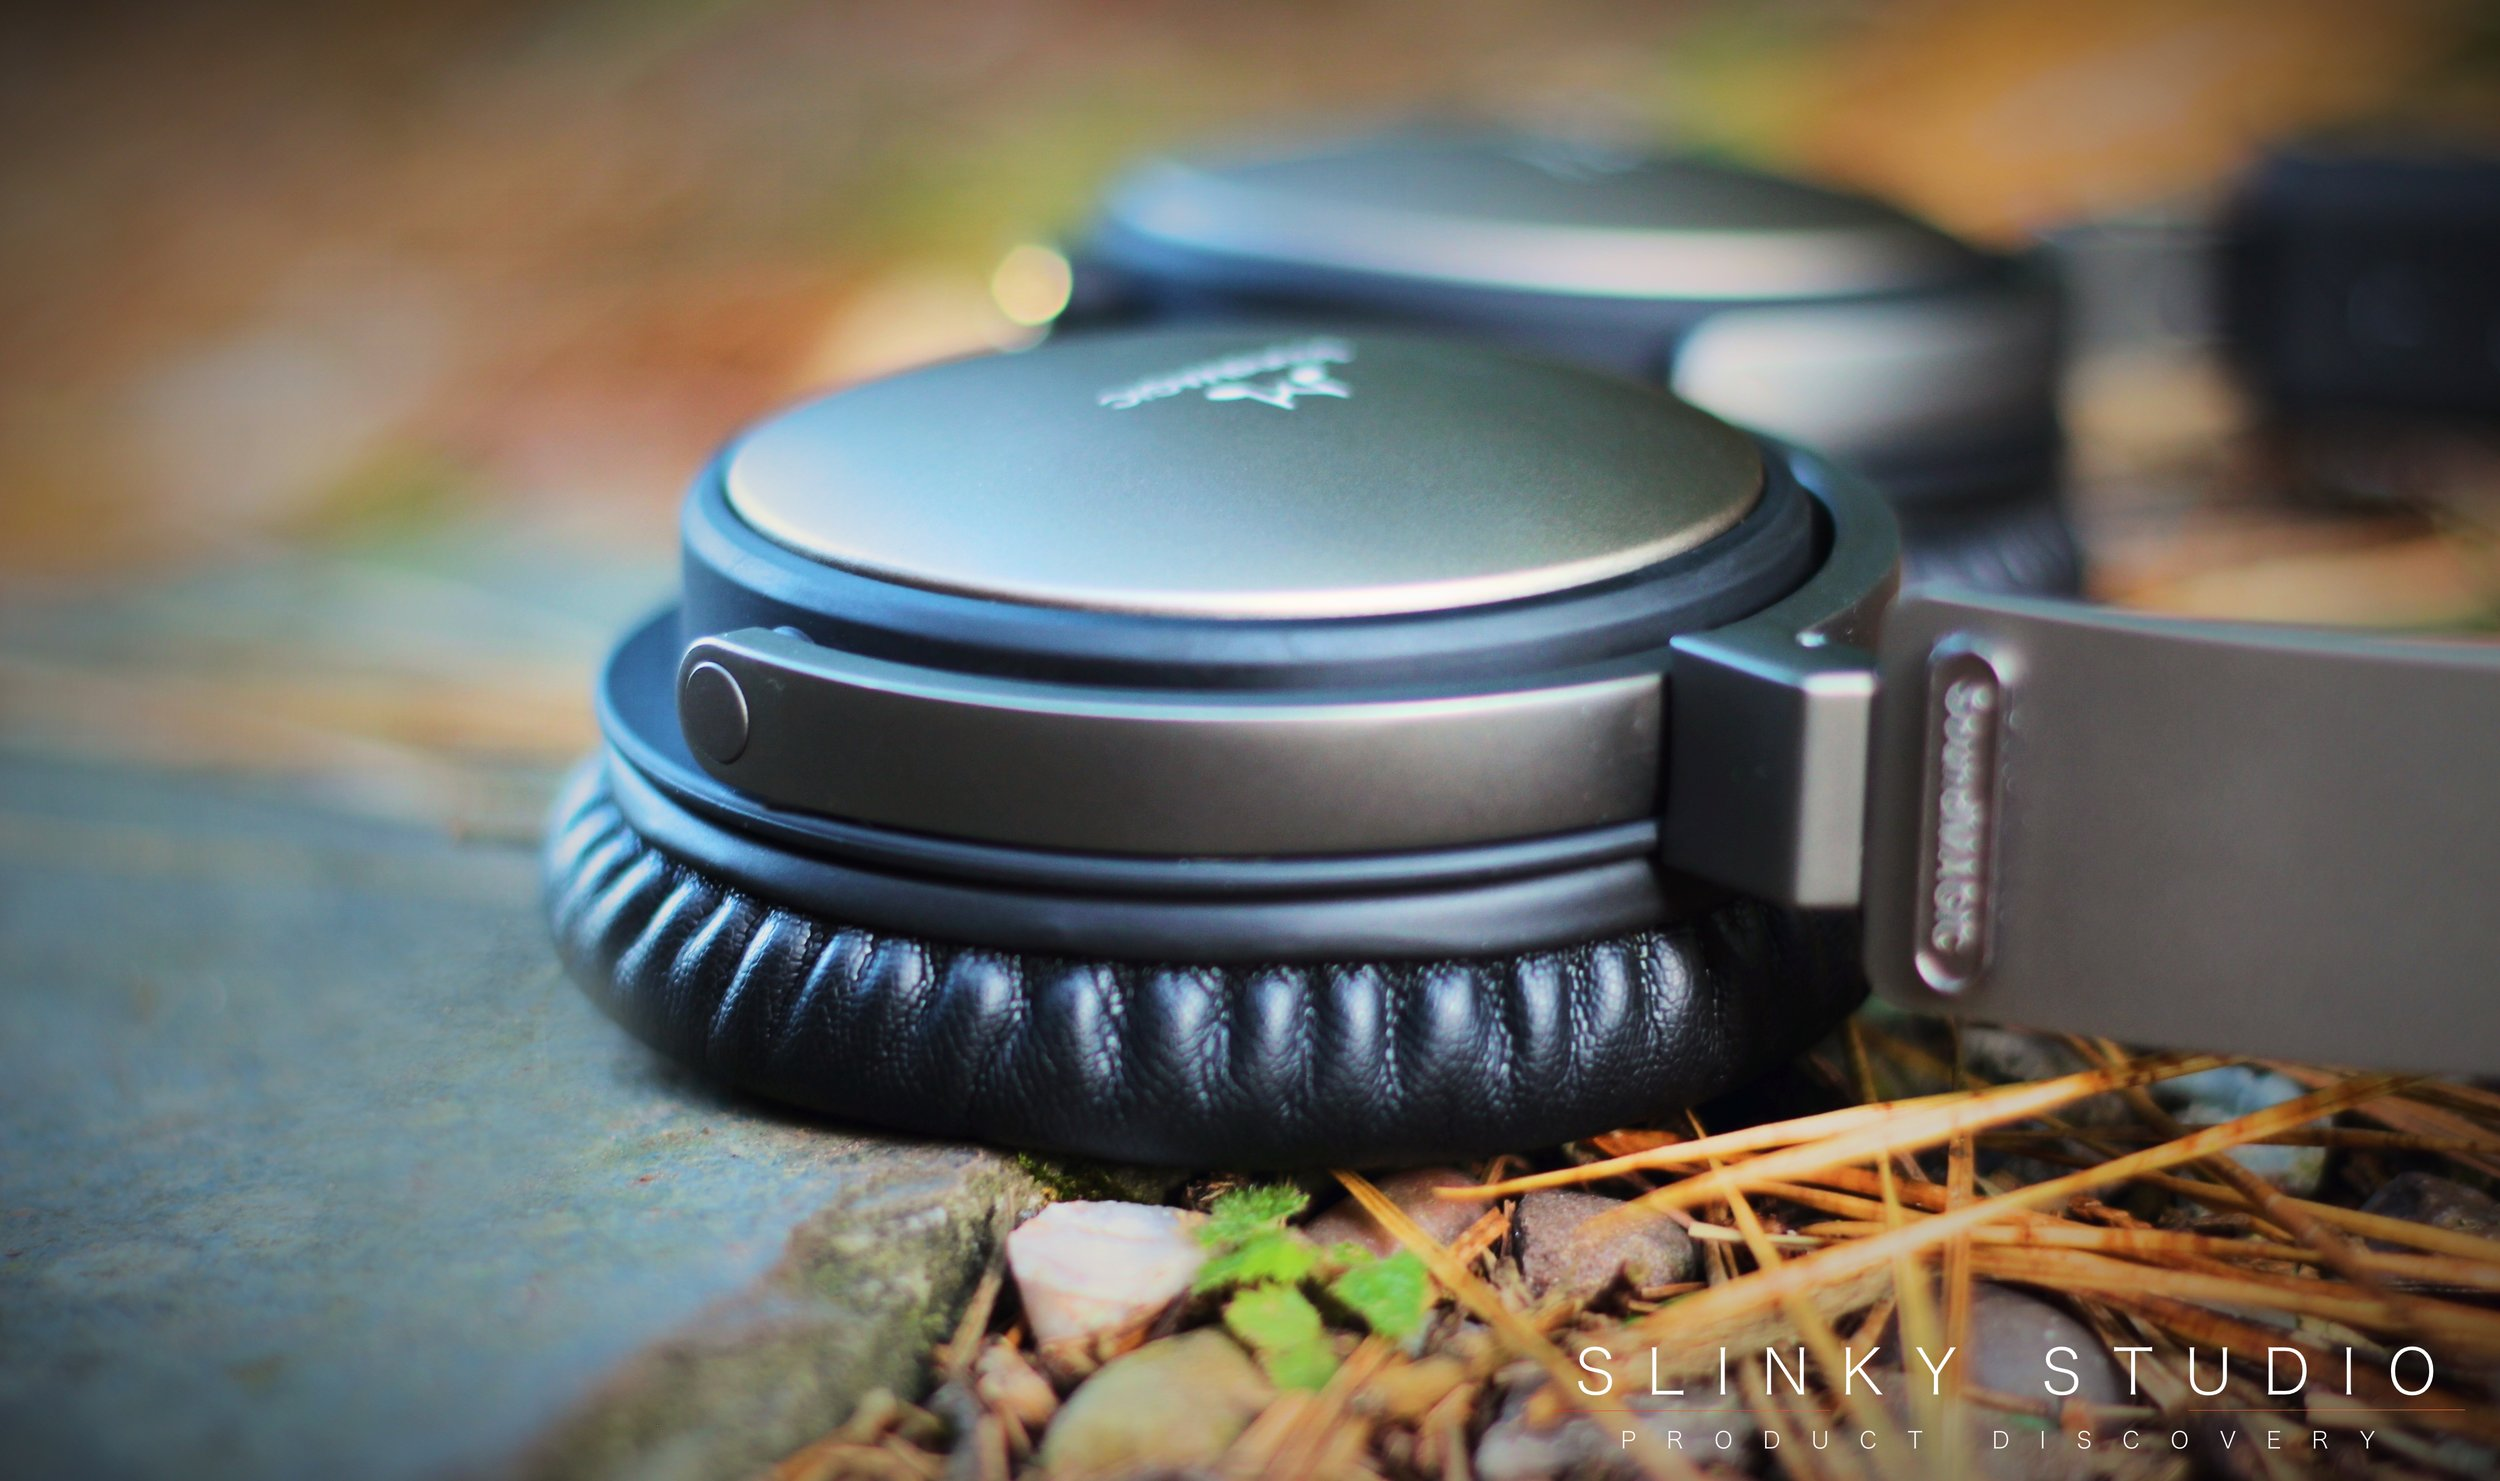 SoundMagic Vento P55 Headphones Lying on Slate.jpg